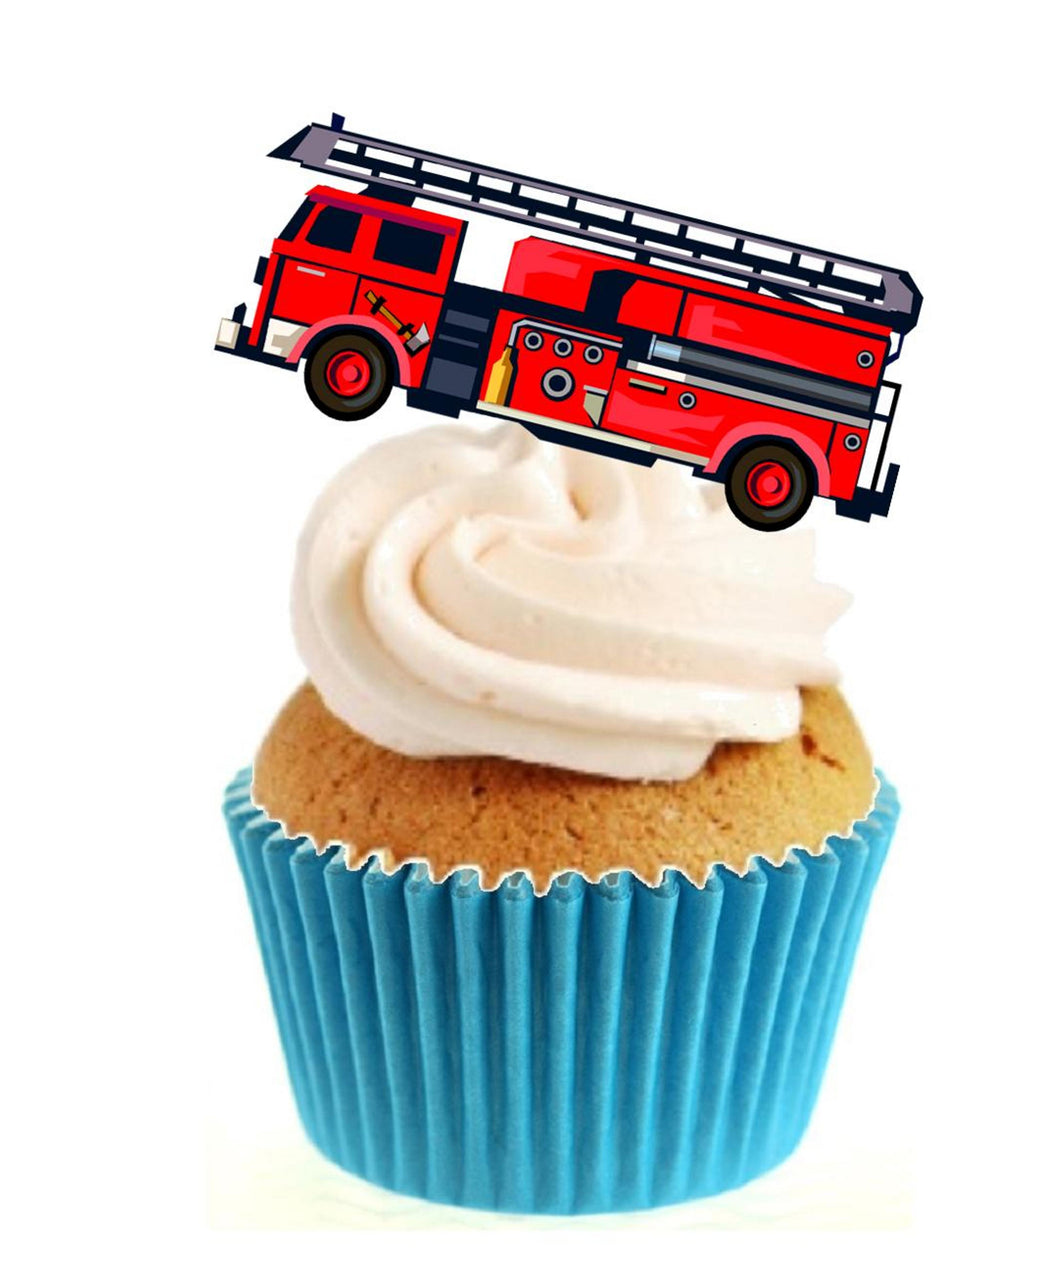 Fire Engine Stand Up Cake Toppers (12 pack)  Pack contains 12 images printed onto premium wafer card